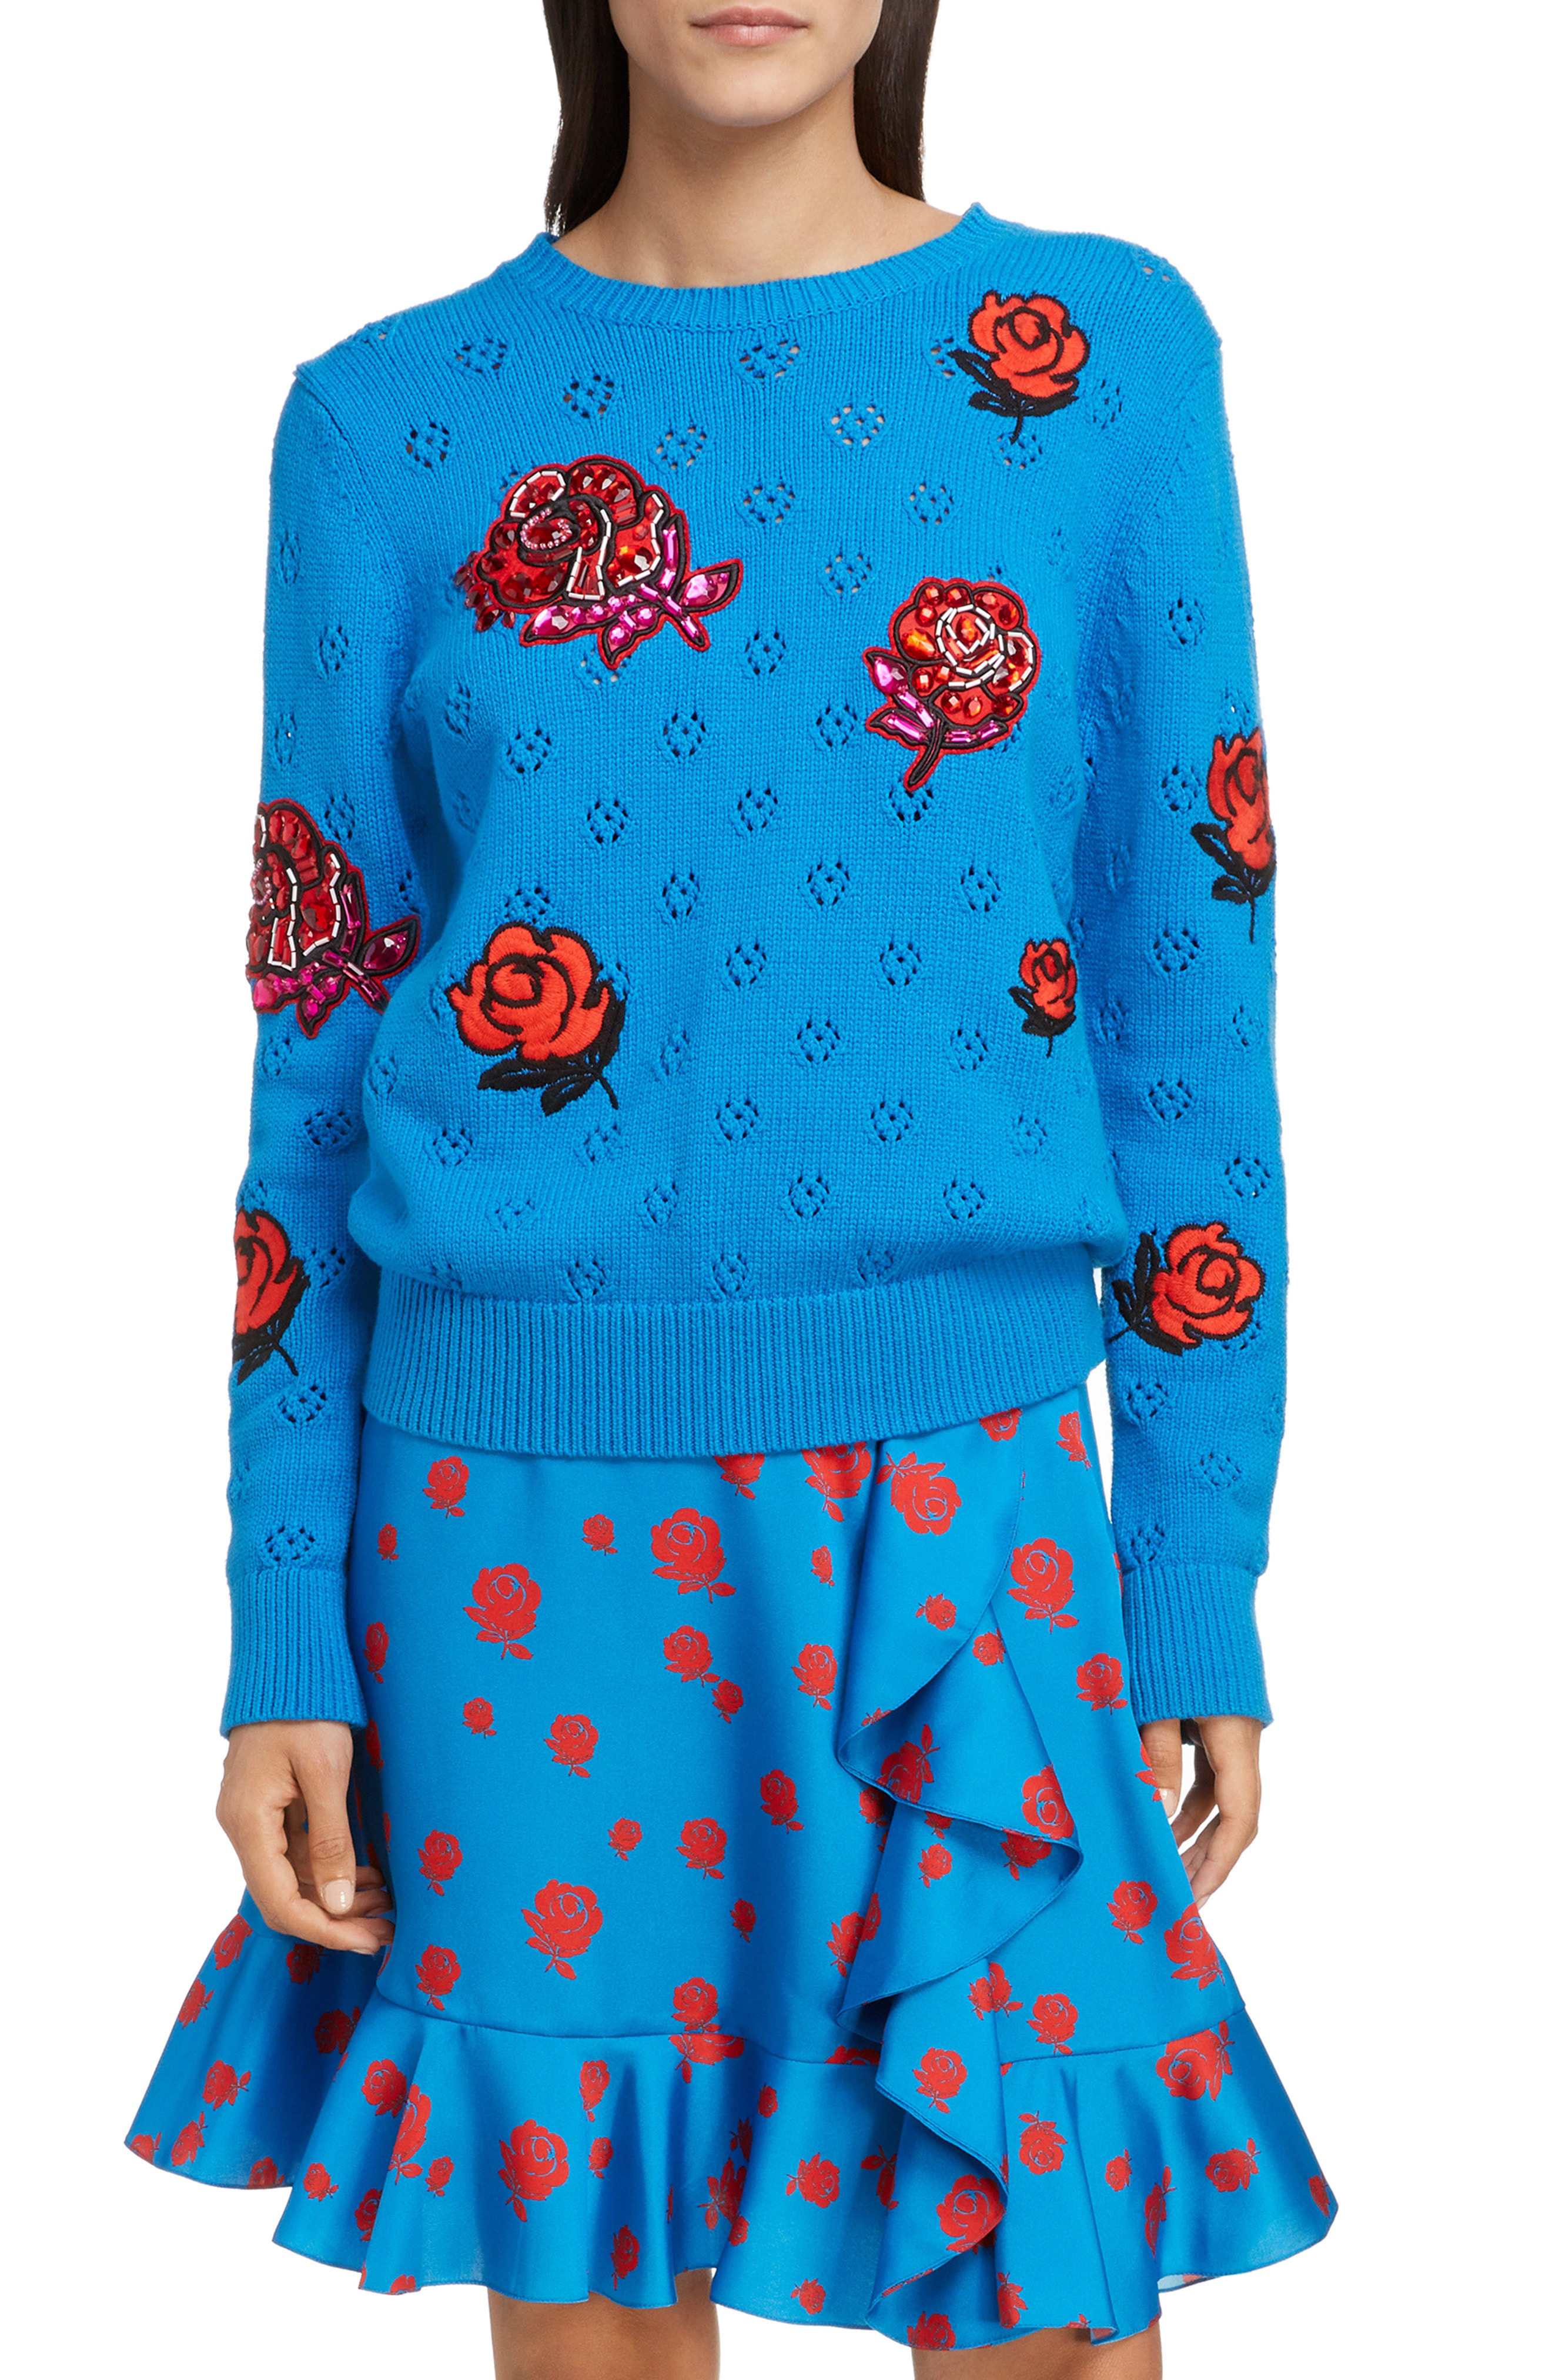 8f7d70201 Kenzo Long-Sleeve Graphic Knit Sweater Top In Blue